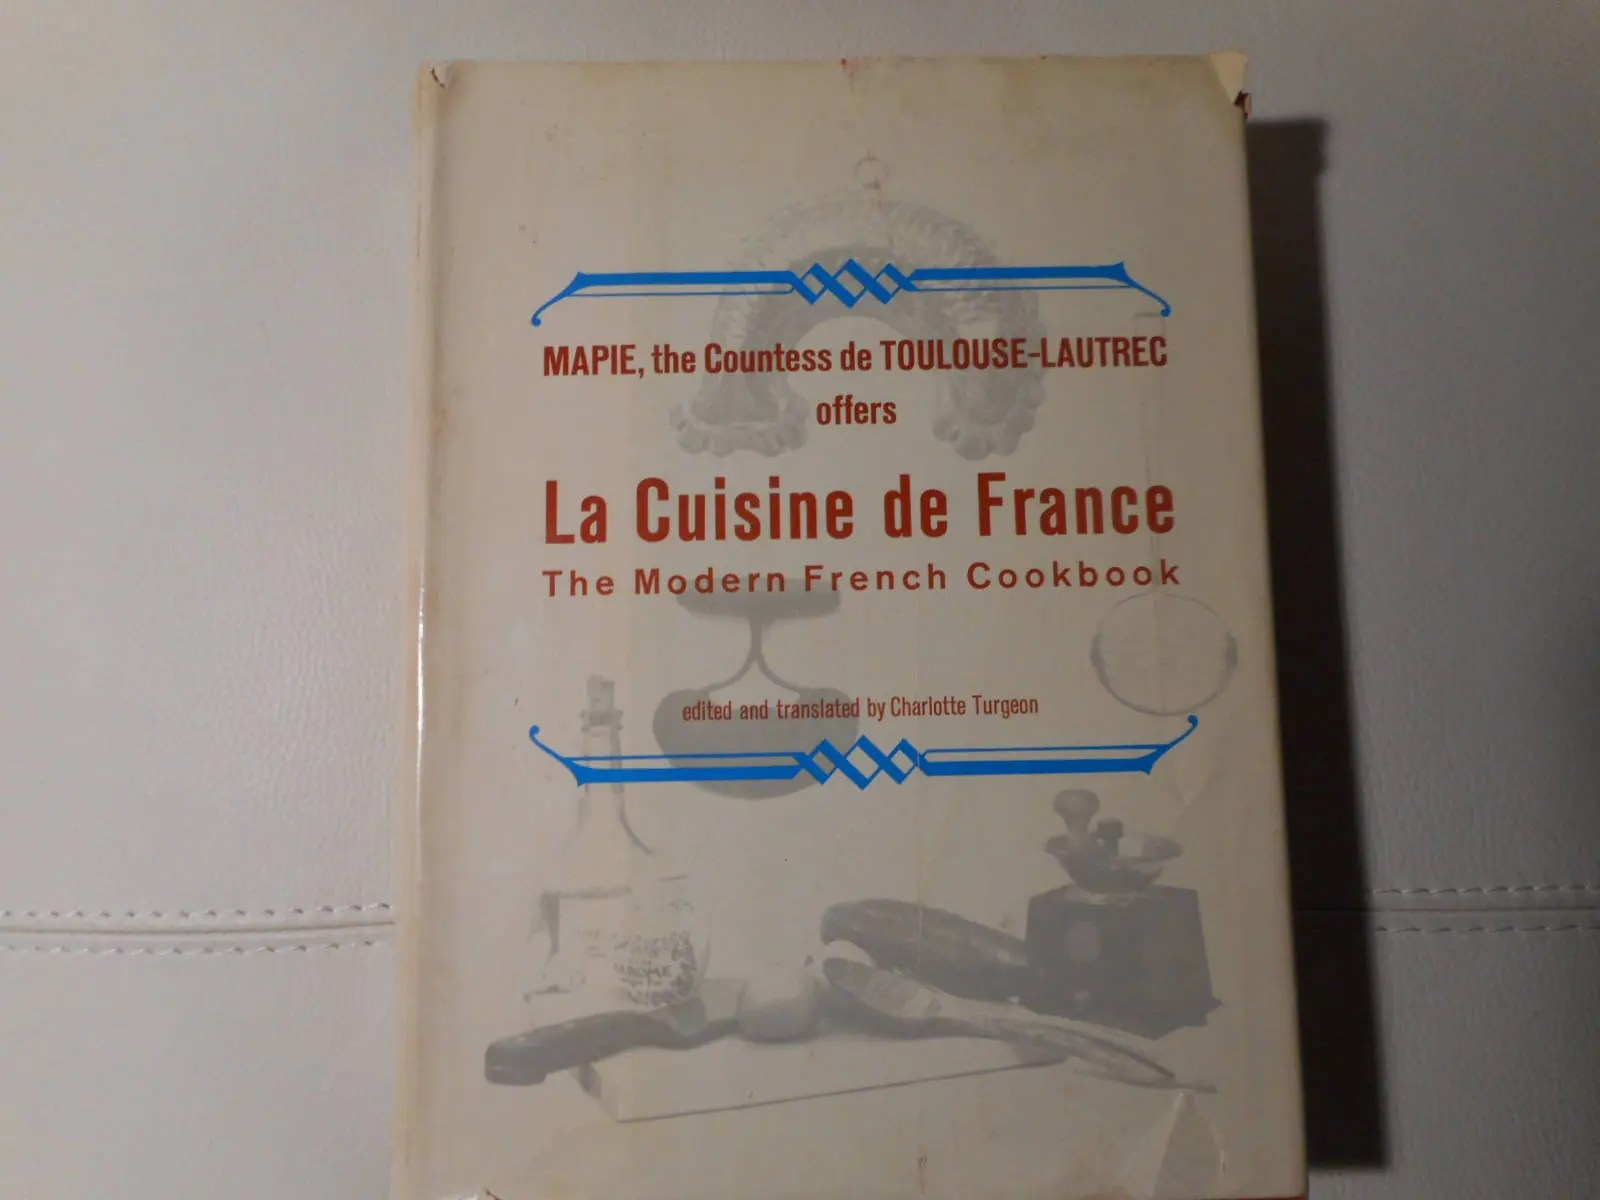 Cuisine De France La Cuisine De France The Modern French Cookbook By Mapie 1964 Hardcover With Dust Jacket Ethnic Regional Cookbook France